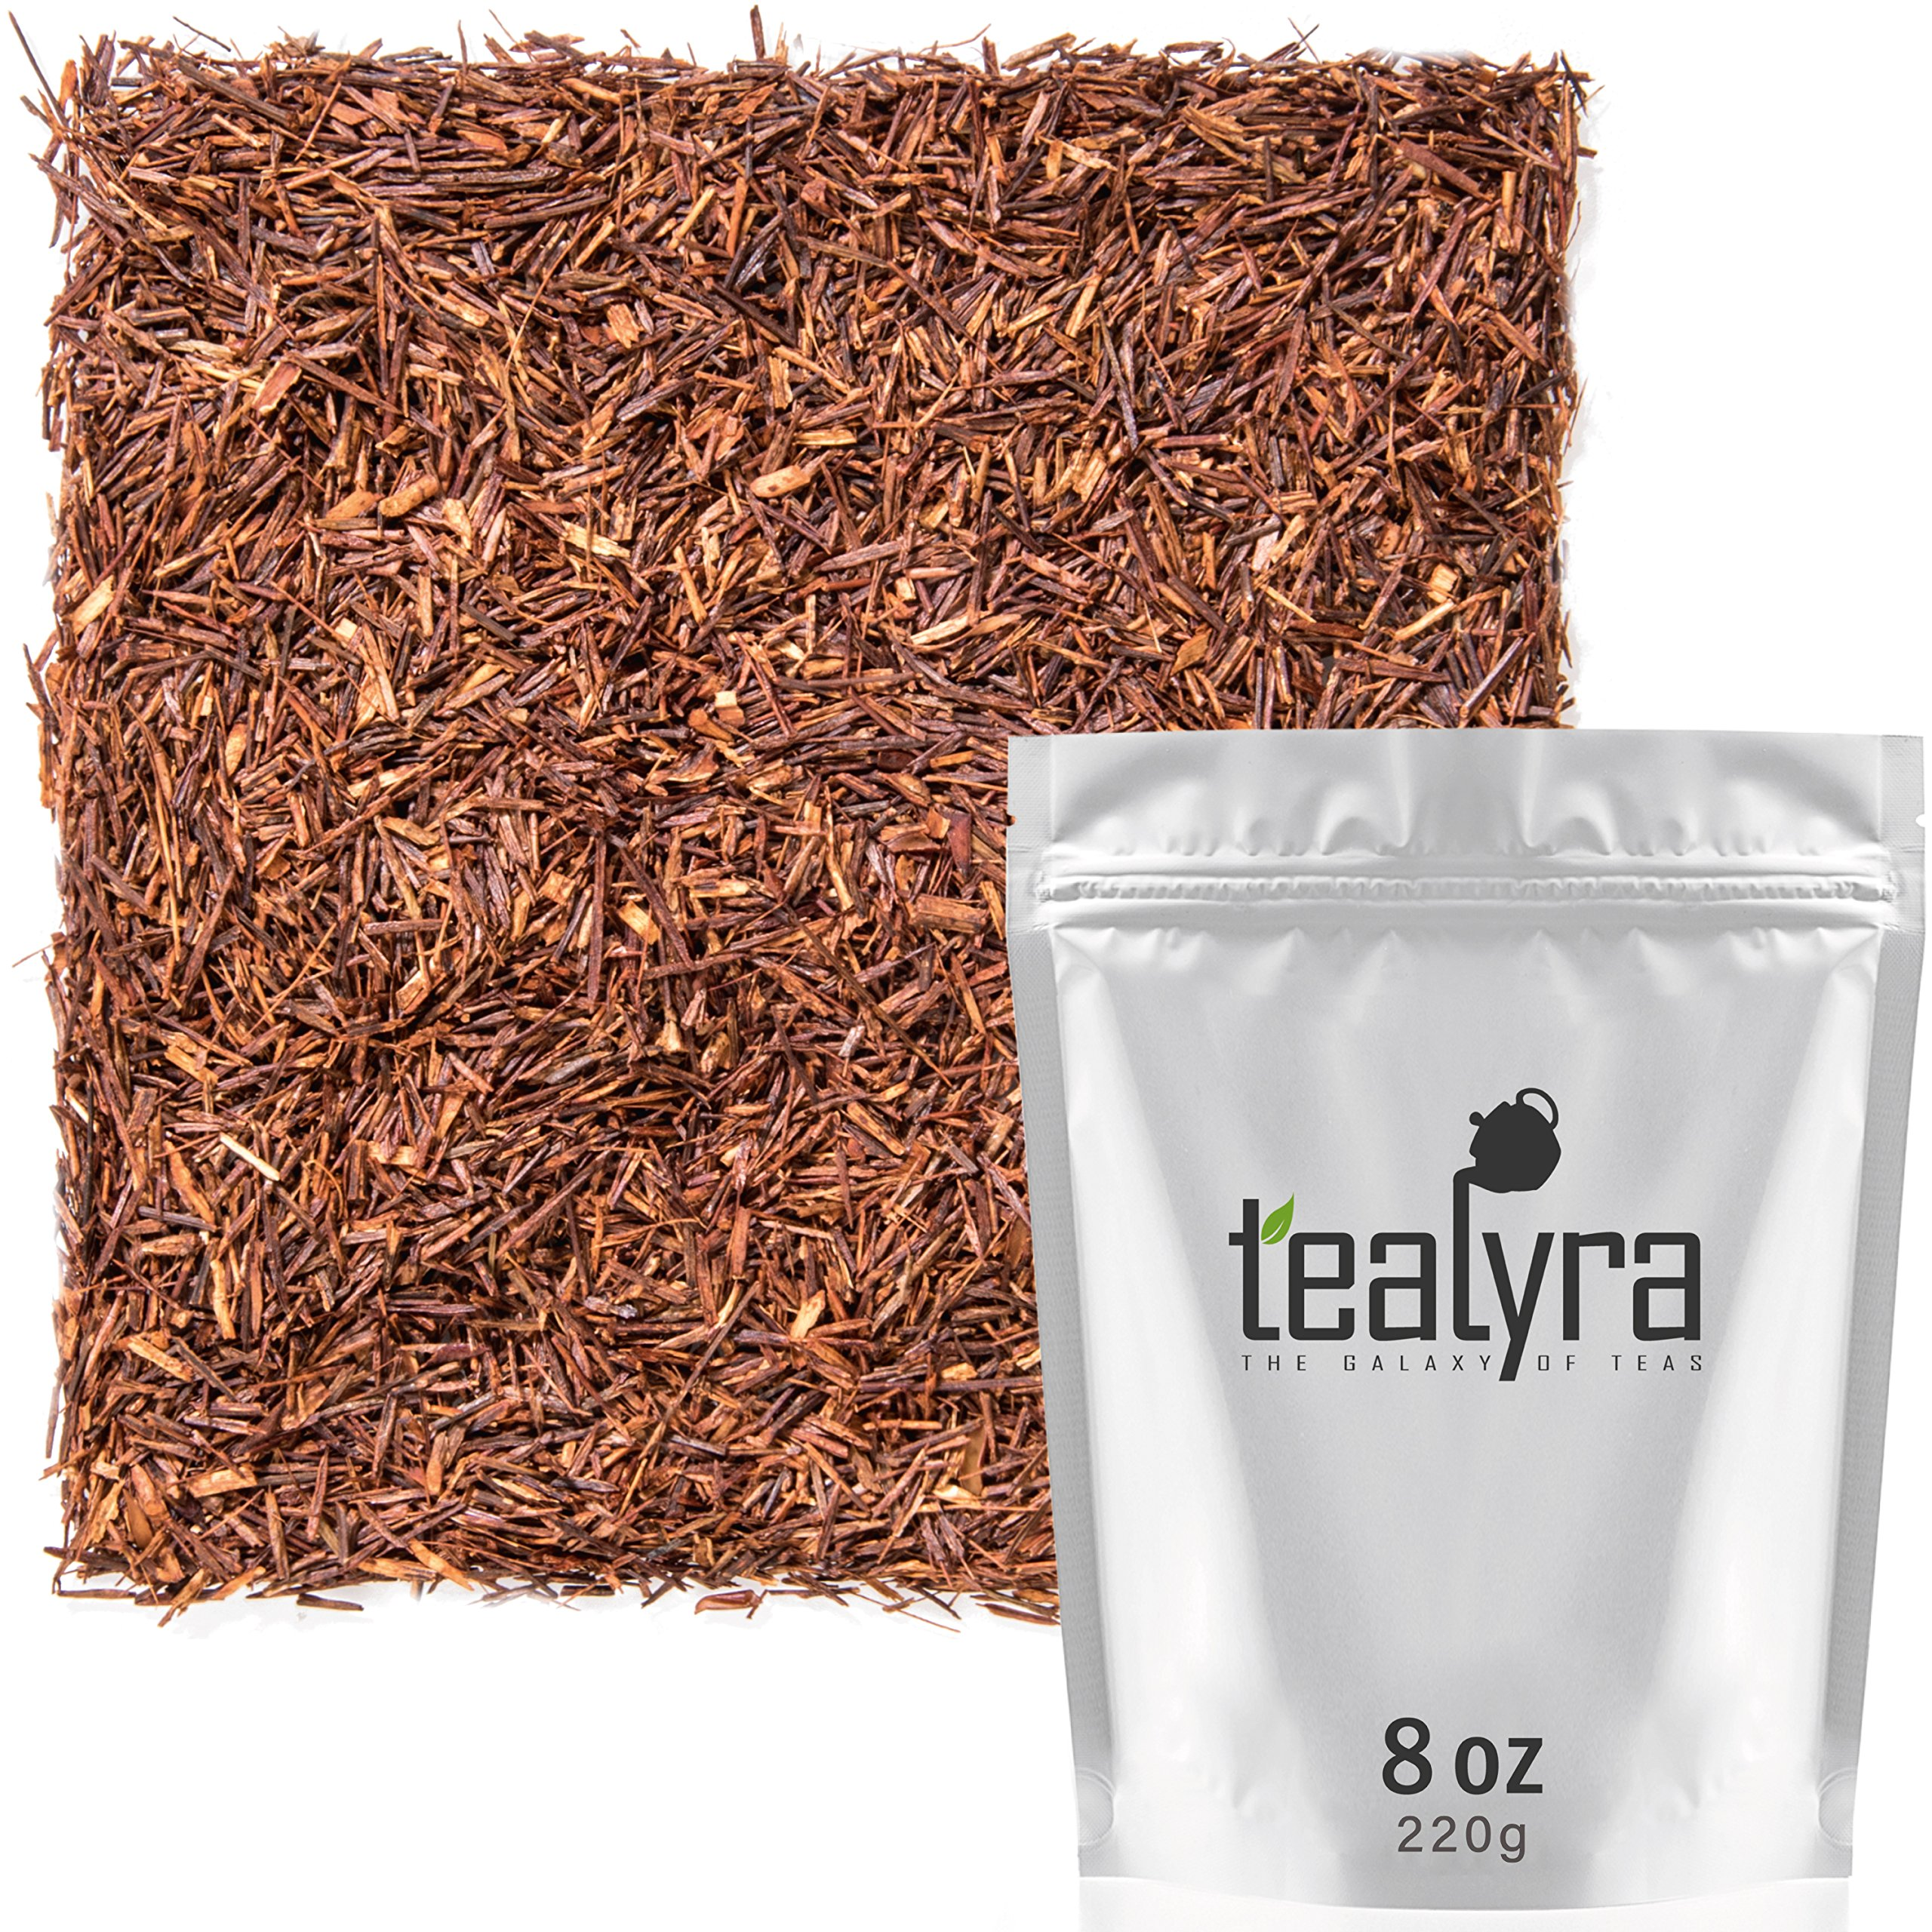 Tealyra - Pure Rooibos Red Herbal Tea - African Red Bush Loose Leaf Tea - High in Antioxidants - Relax - Detox - Low Blood Pressure - Kids Welcome - Caffeine-Free - Organically Grown - 220g (8-ounce) by Tealyra